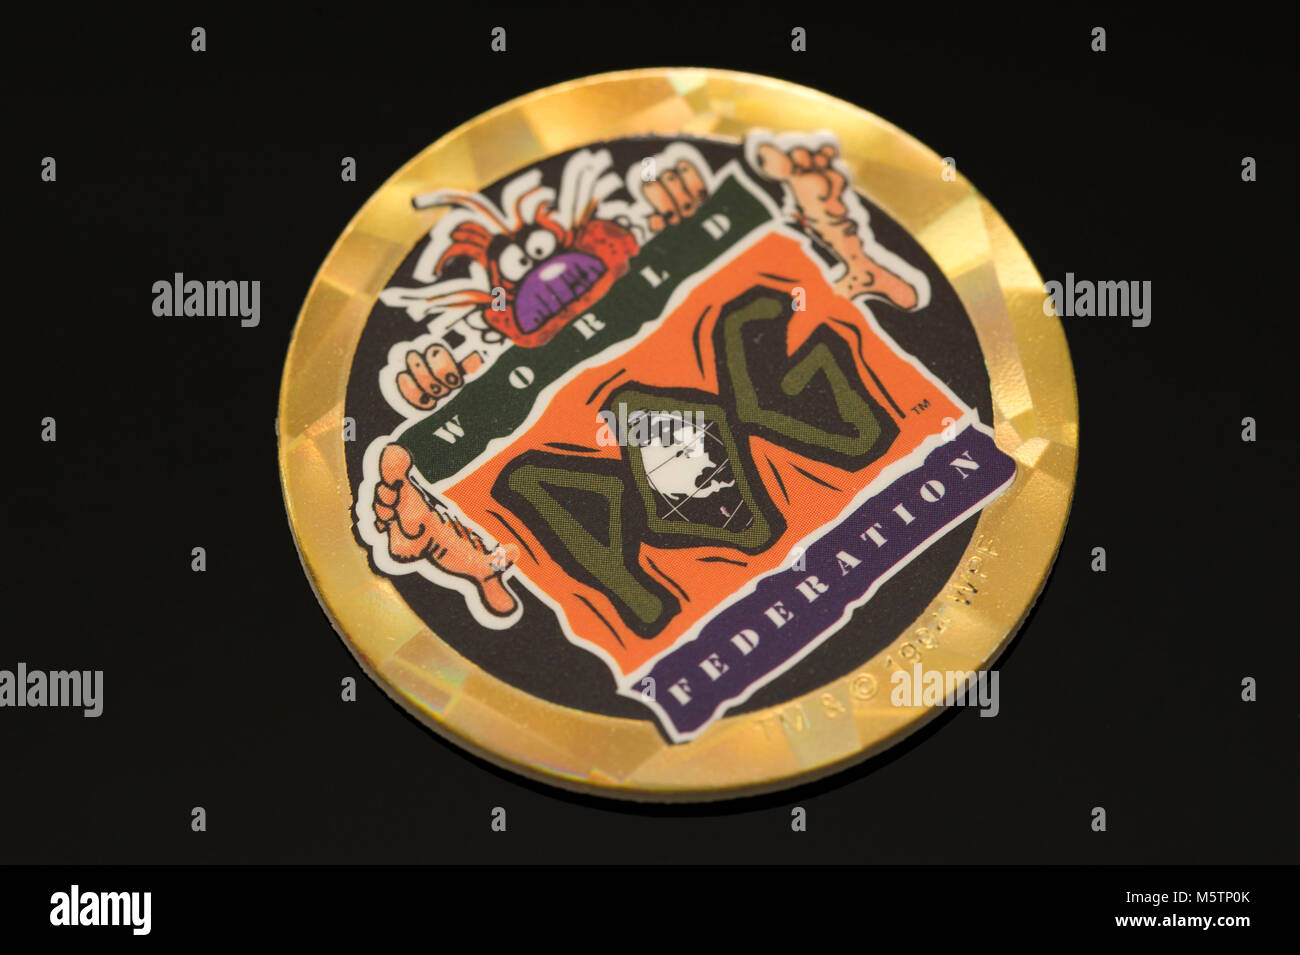 Pogs (Milk cap) collectibles which was a popular children's game in the 1990's - Stock Image